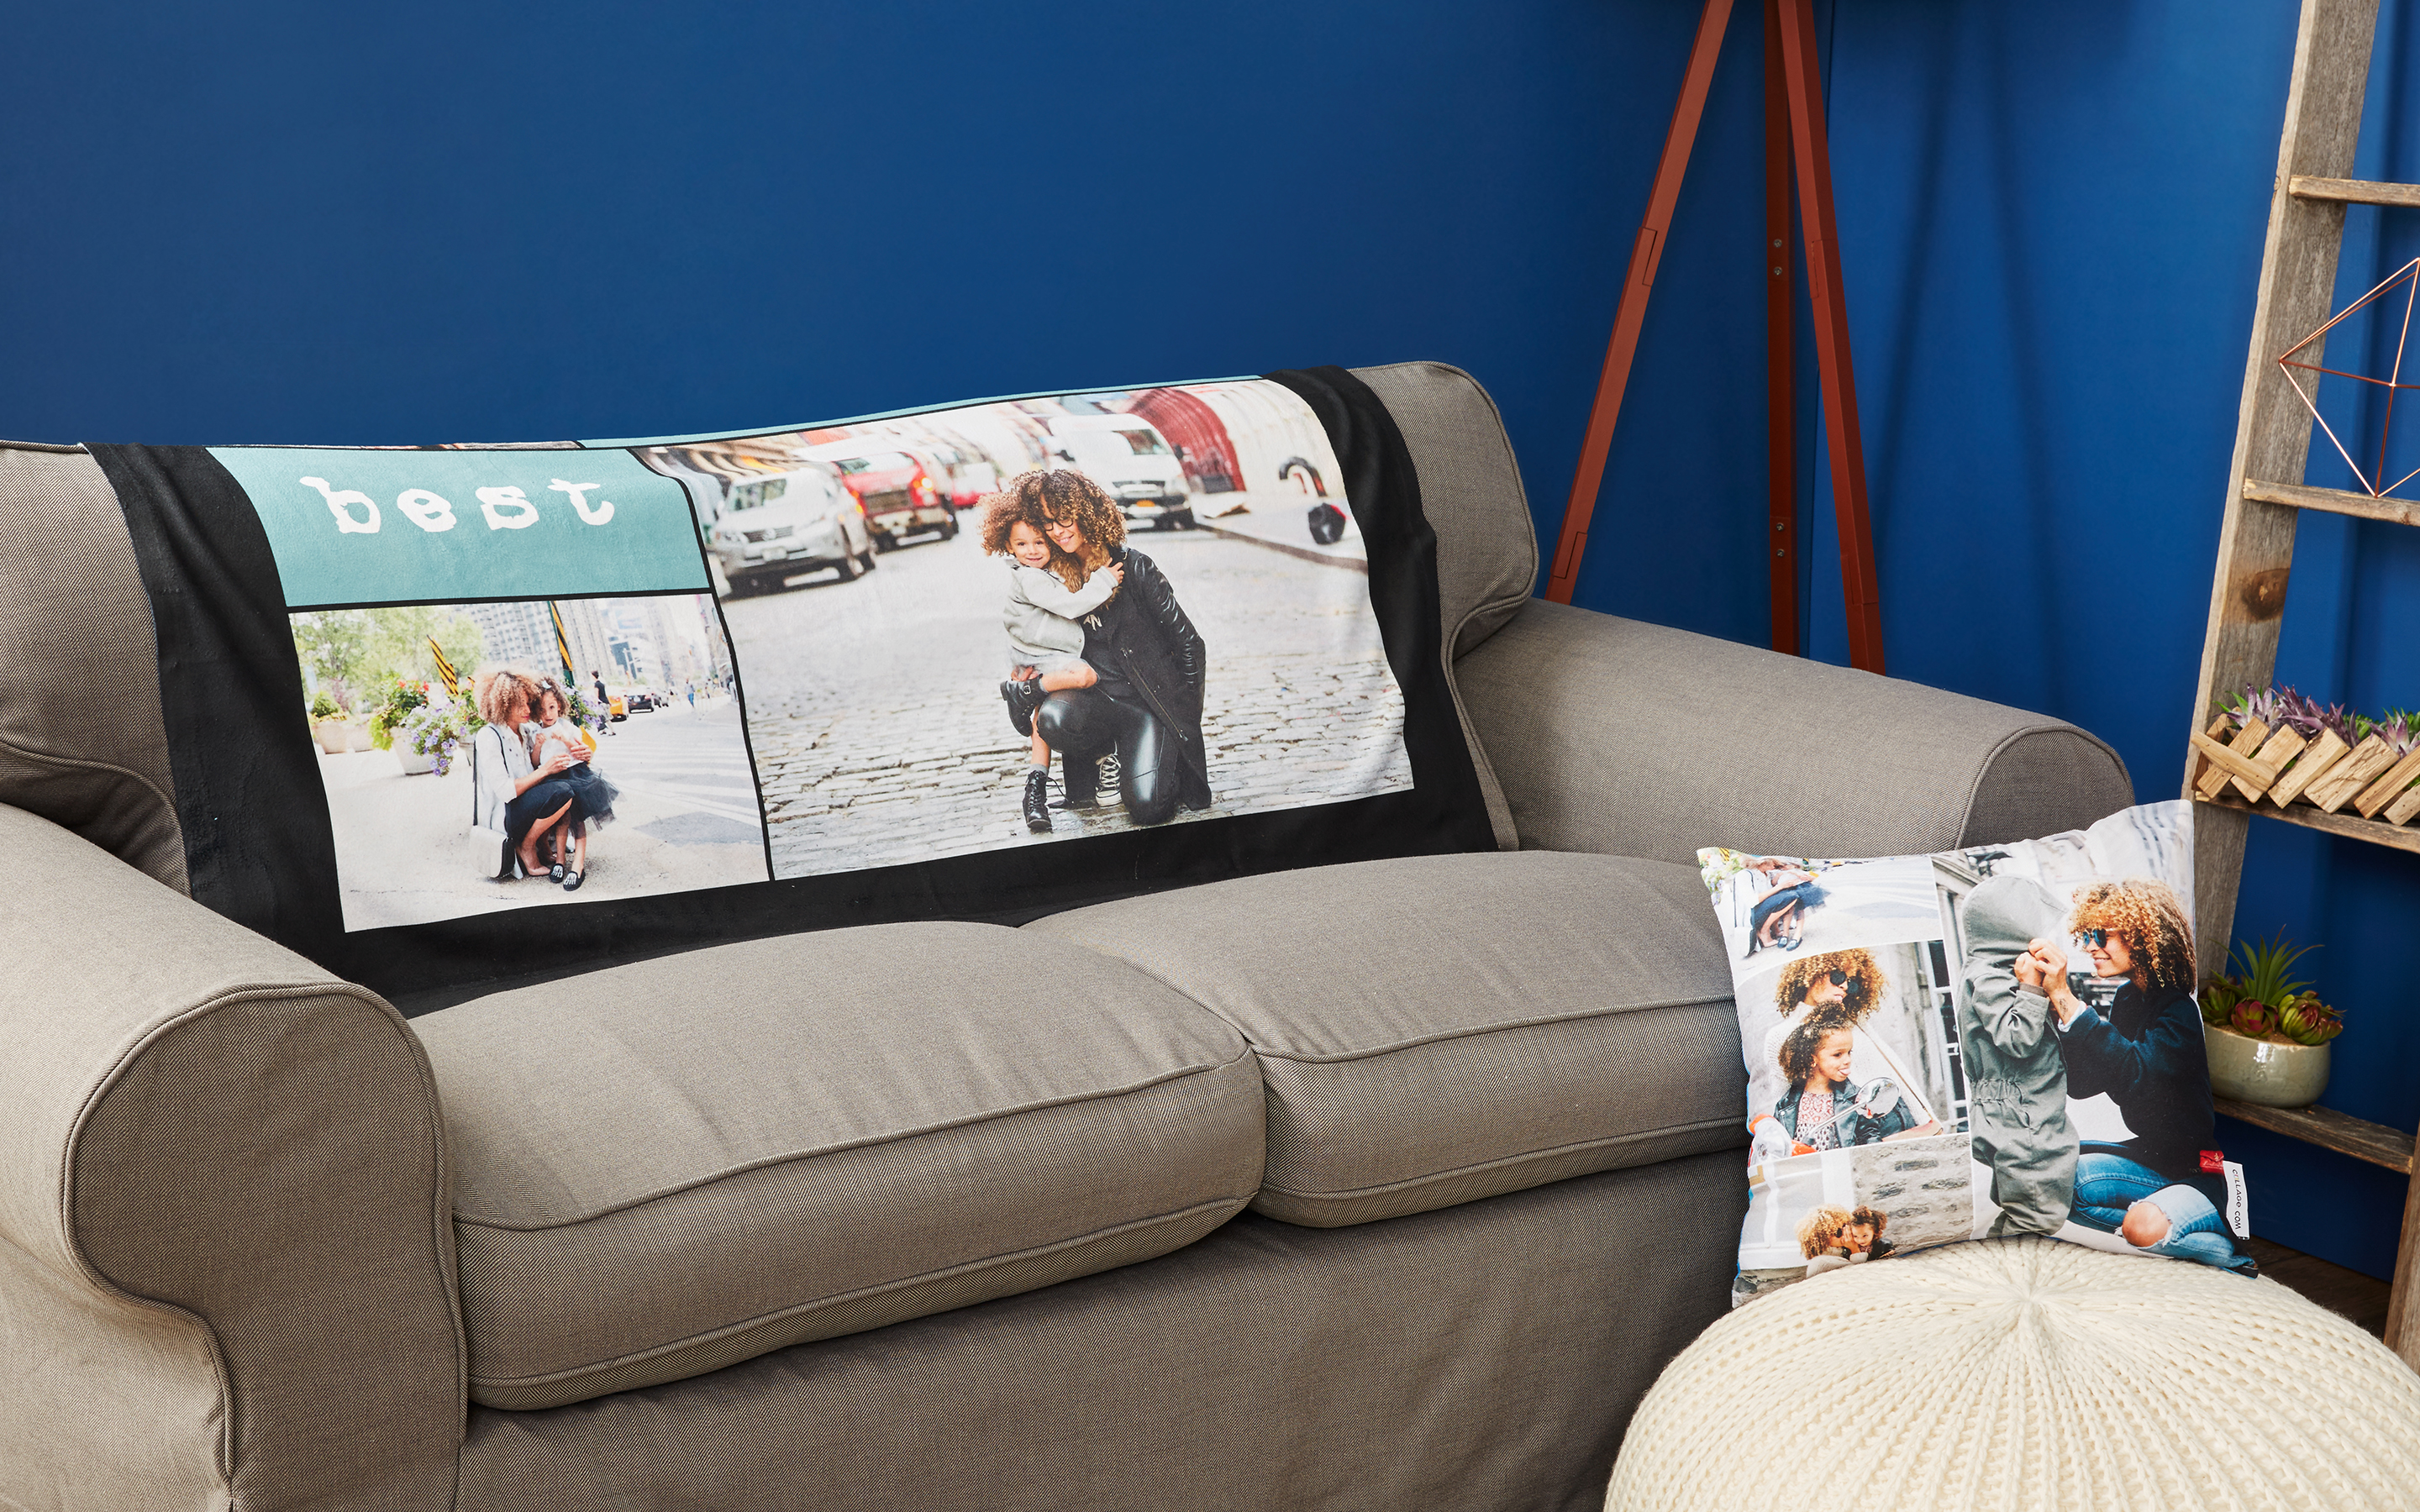 blanket kupon to cushion grandmother grandma gift gallery make pillows custom personalized pillow how idea throw made